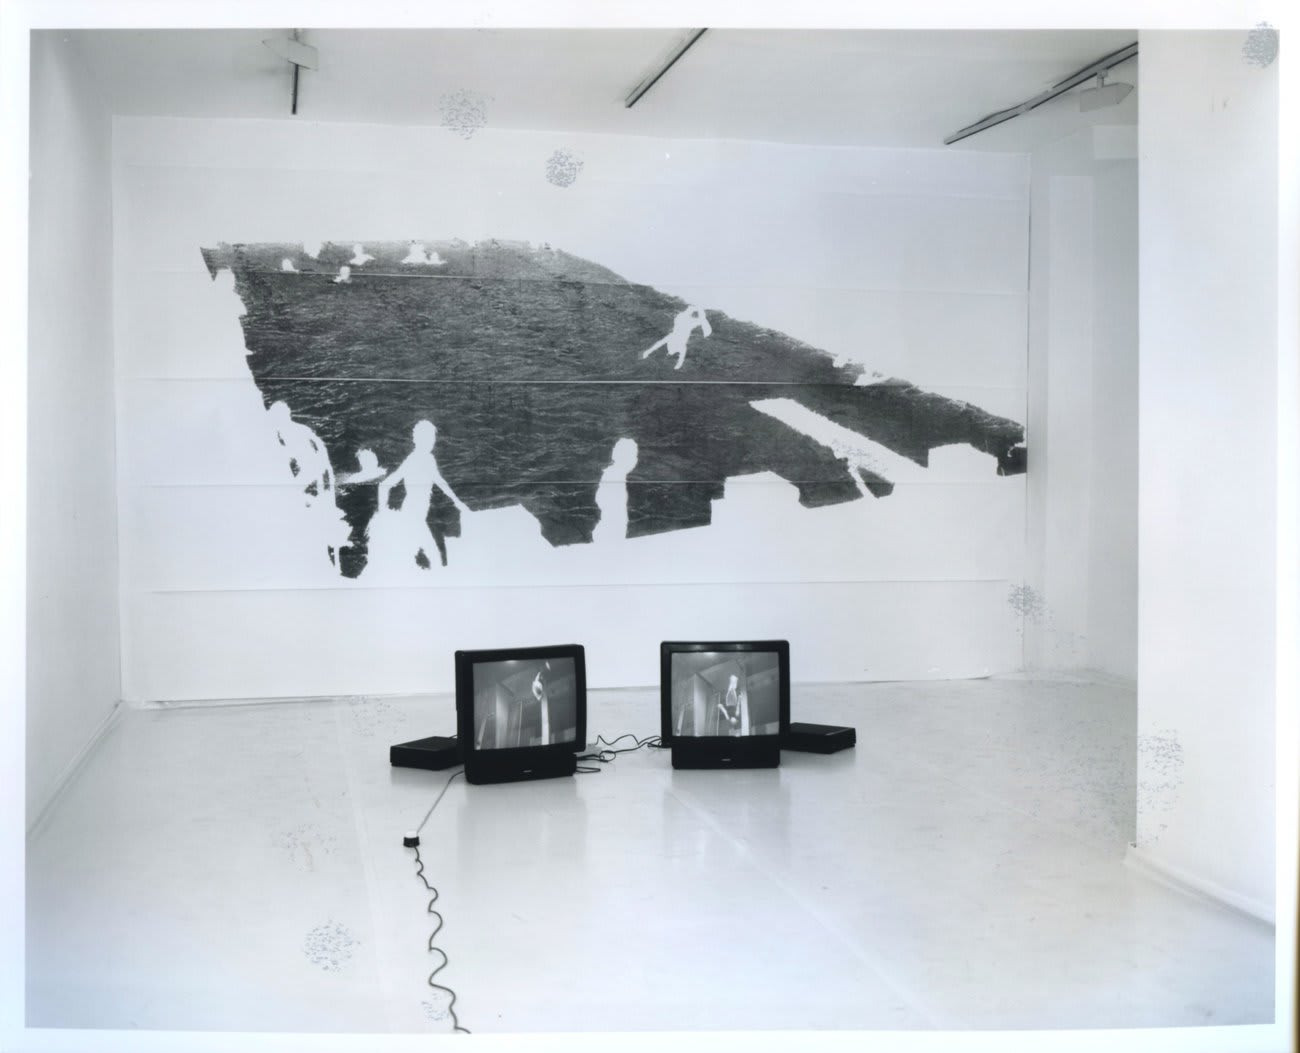 Caroline Caley & Angus Fairhurst: All Evidence of Man Removed, installation view, July 1993